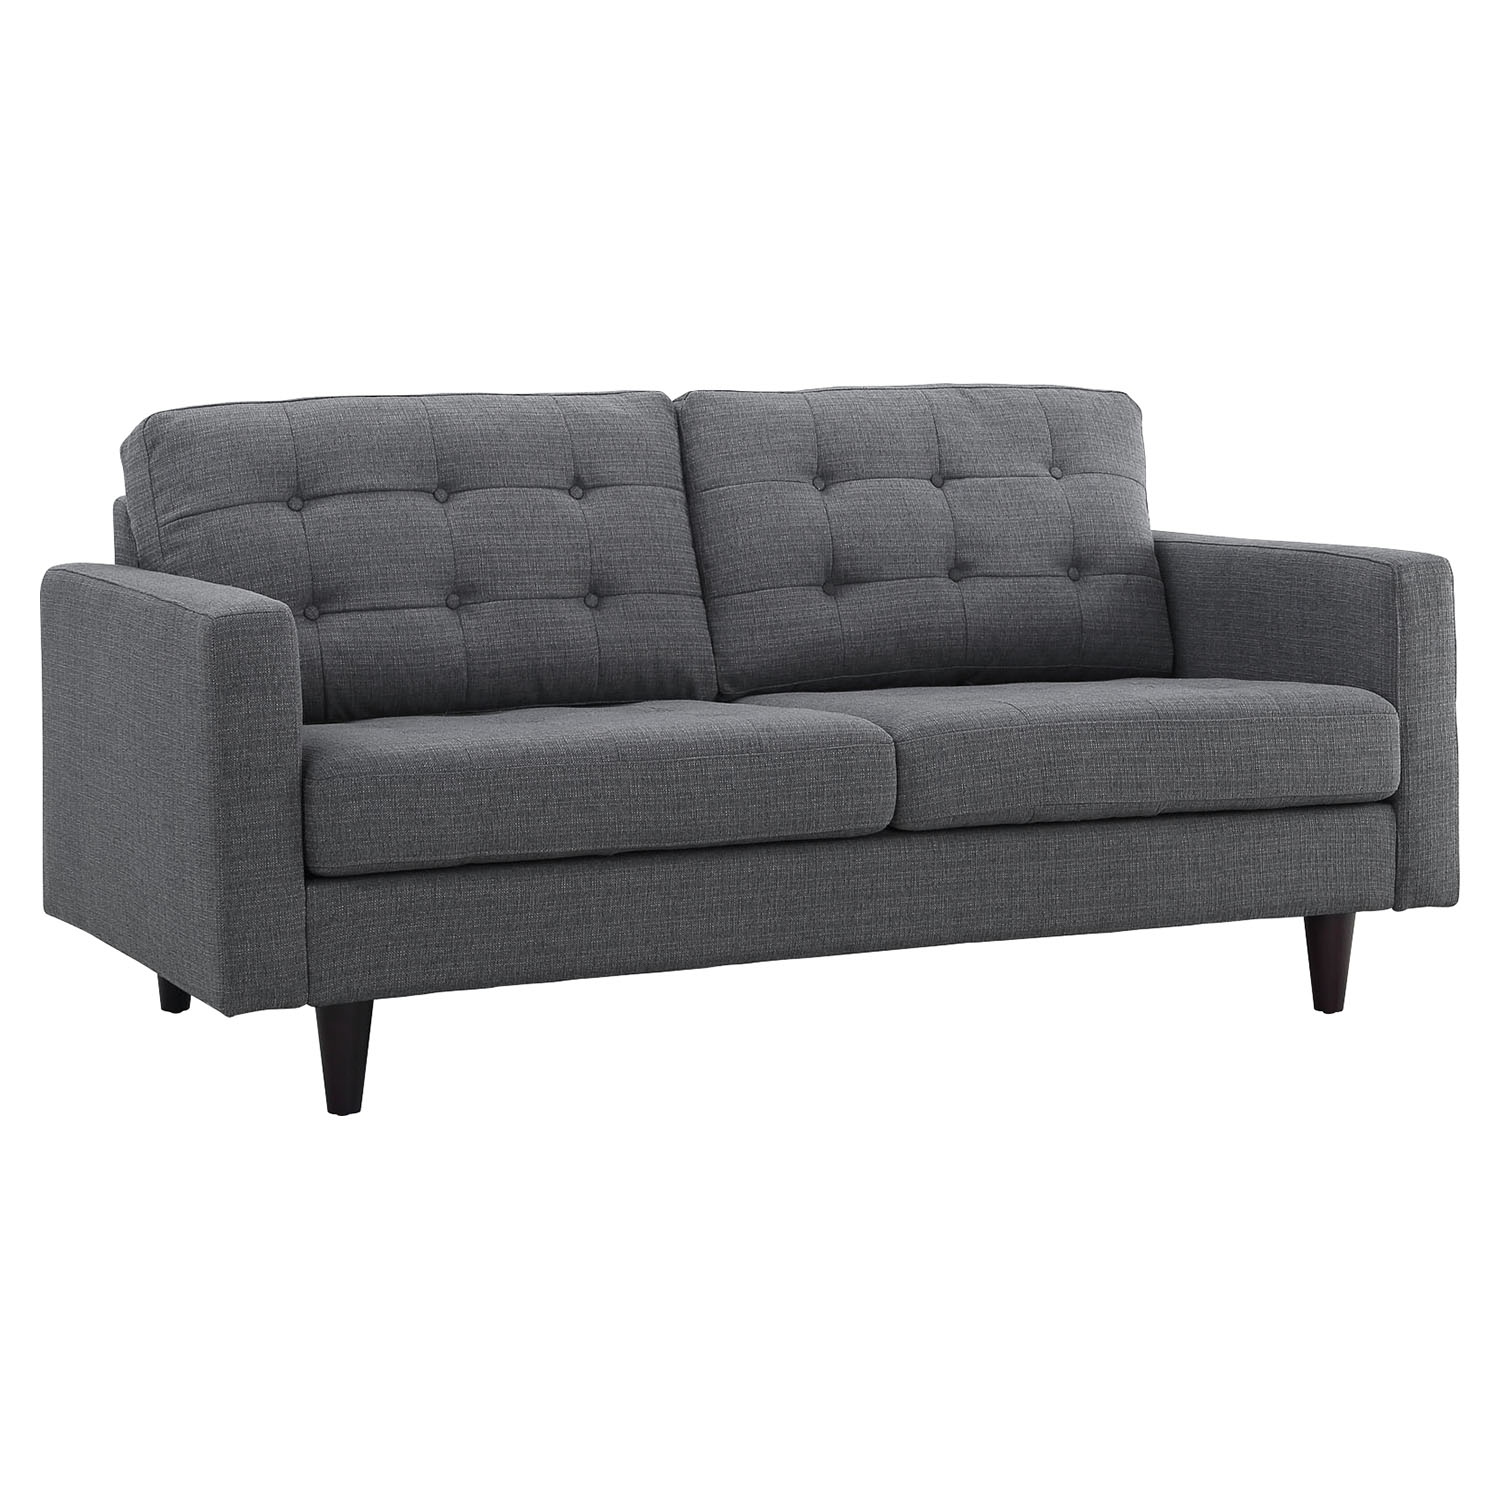 Empress Upholstered Loveseat Tufted Dcg Stores